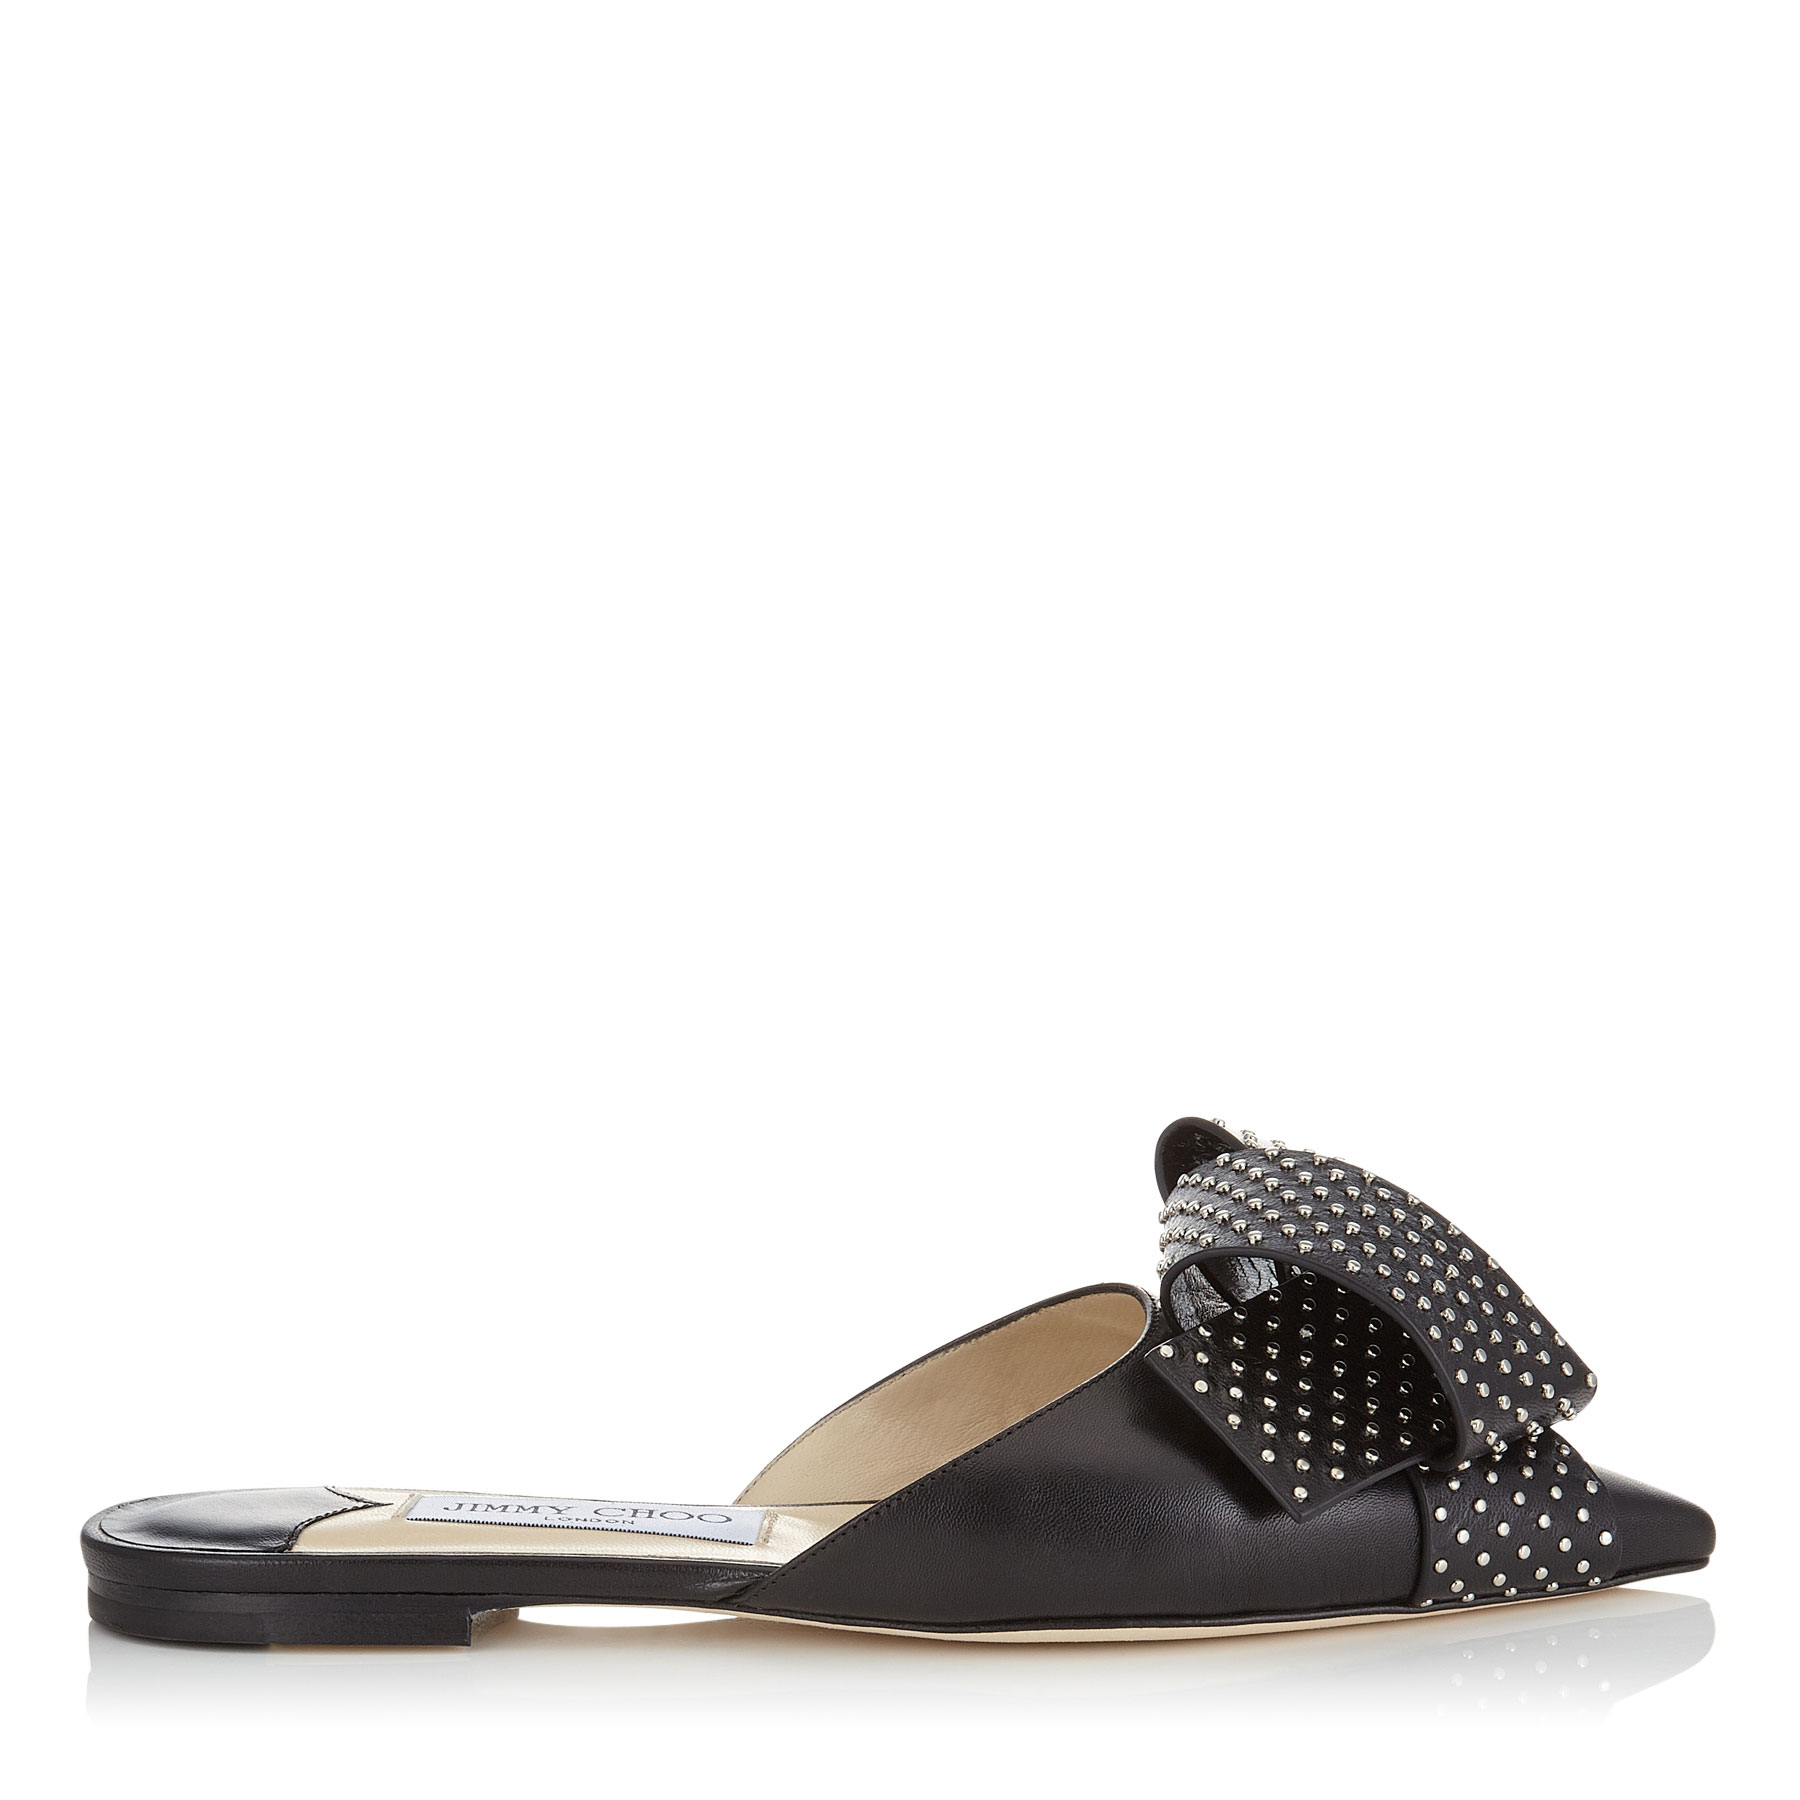 GRETCHEN FLAT Black Kid Leather Flats with Silver Studded Bow by Jimmy Choo